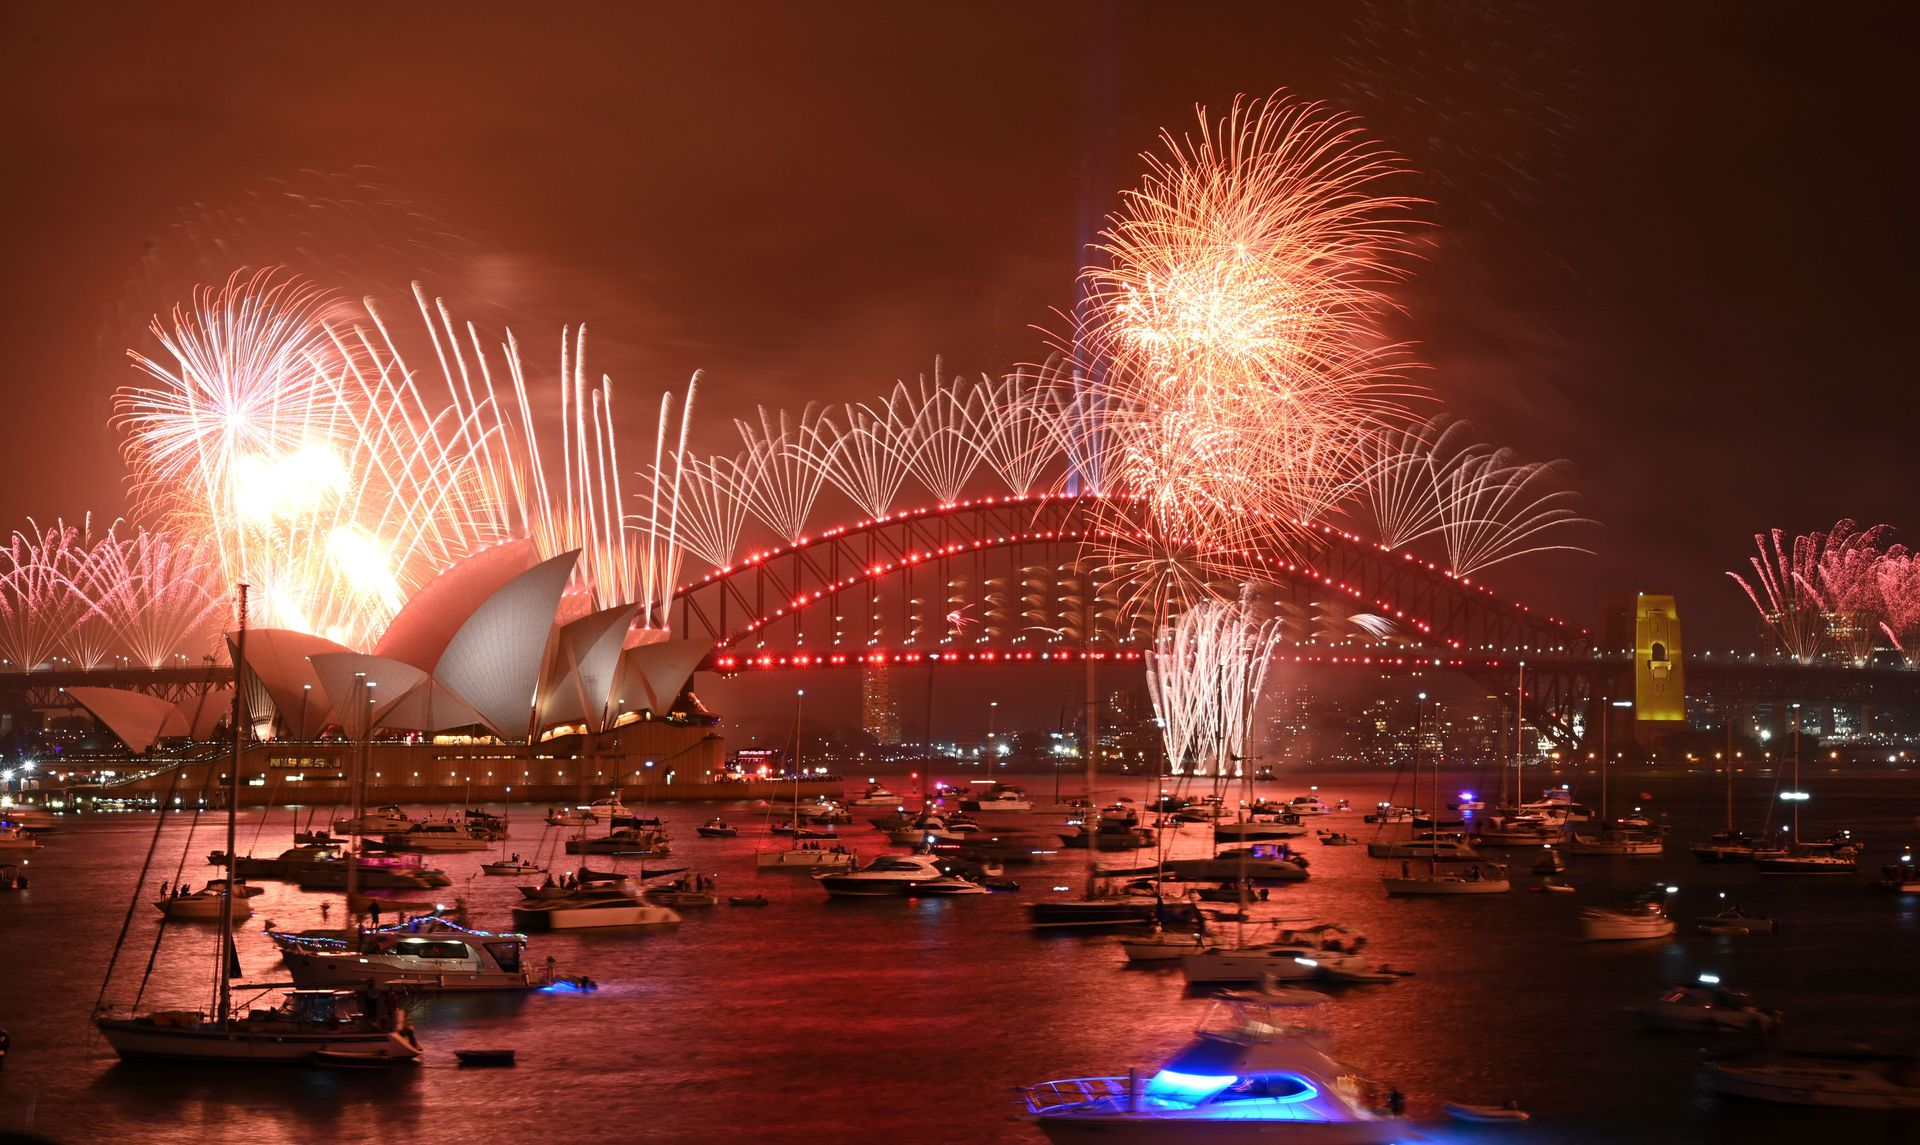 new year s eve around the world cities ring in 2020 photos axios new year s eve around the world cities